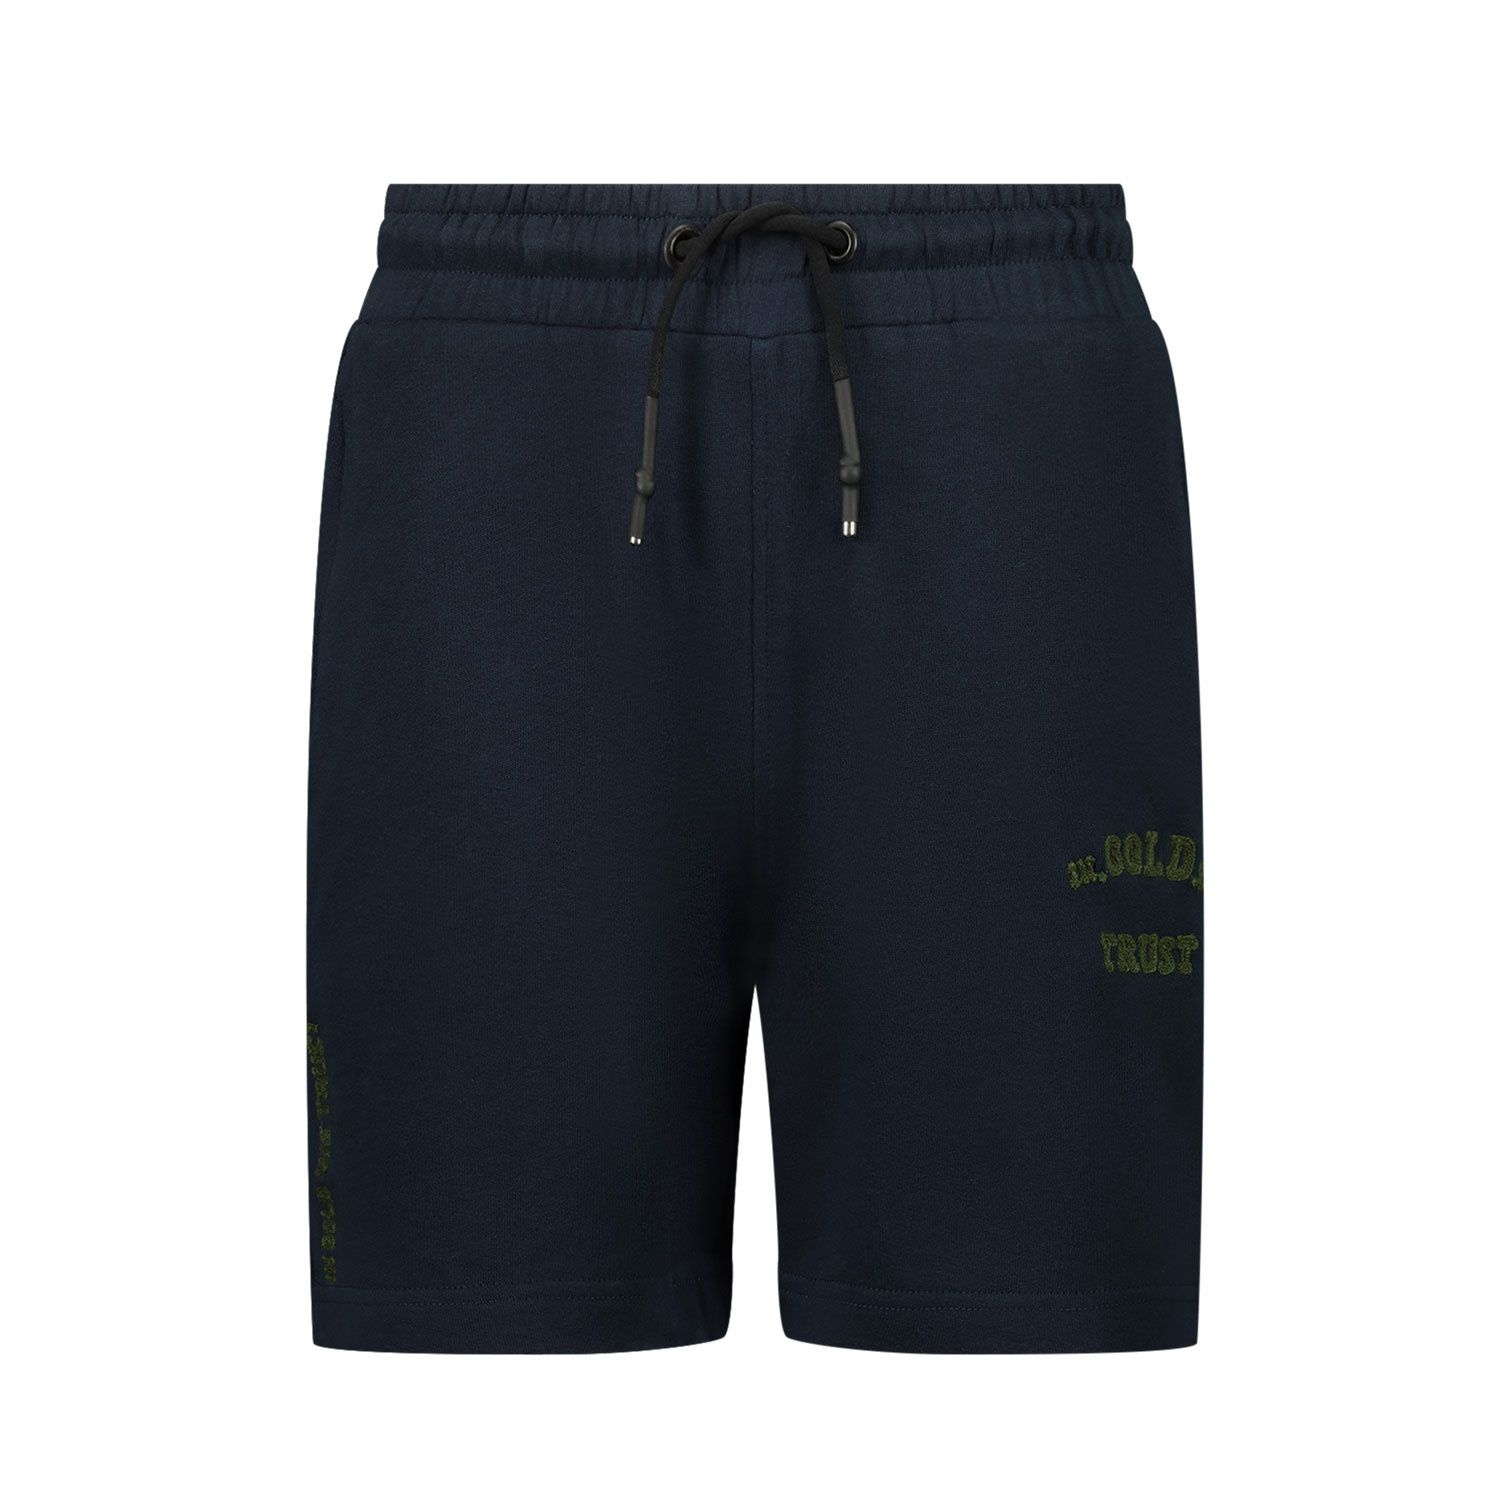 Picture of in Gold We Trust CHAIN EMBROIDERY SHORT kids shorts blue